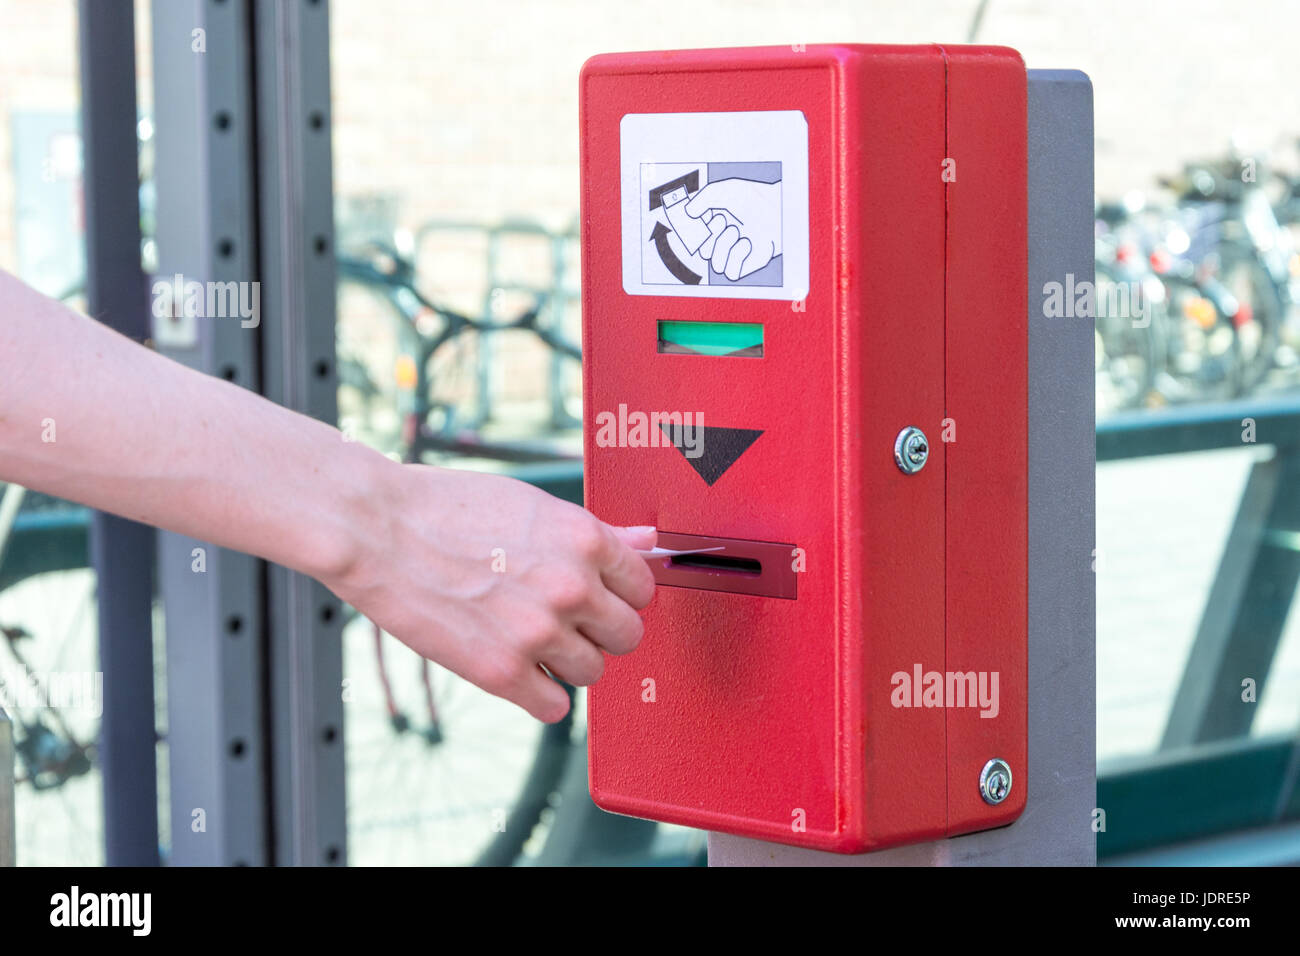 Validate a ticket at a red ticket validation machine for the underground from the side - Stock Image